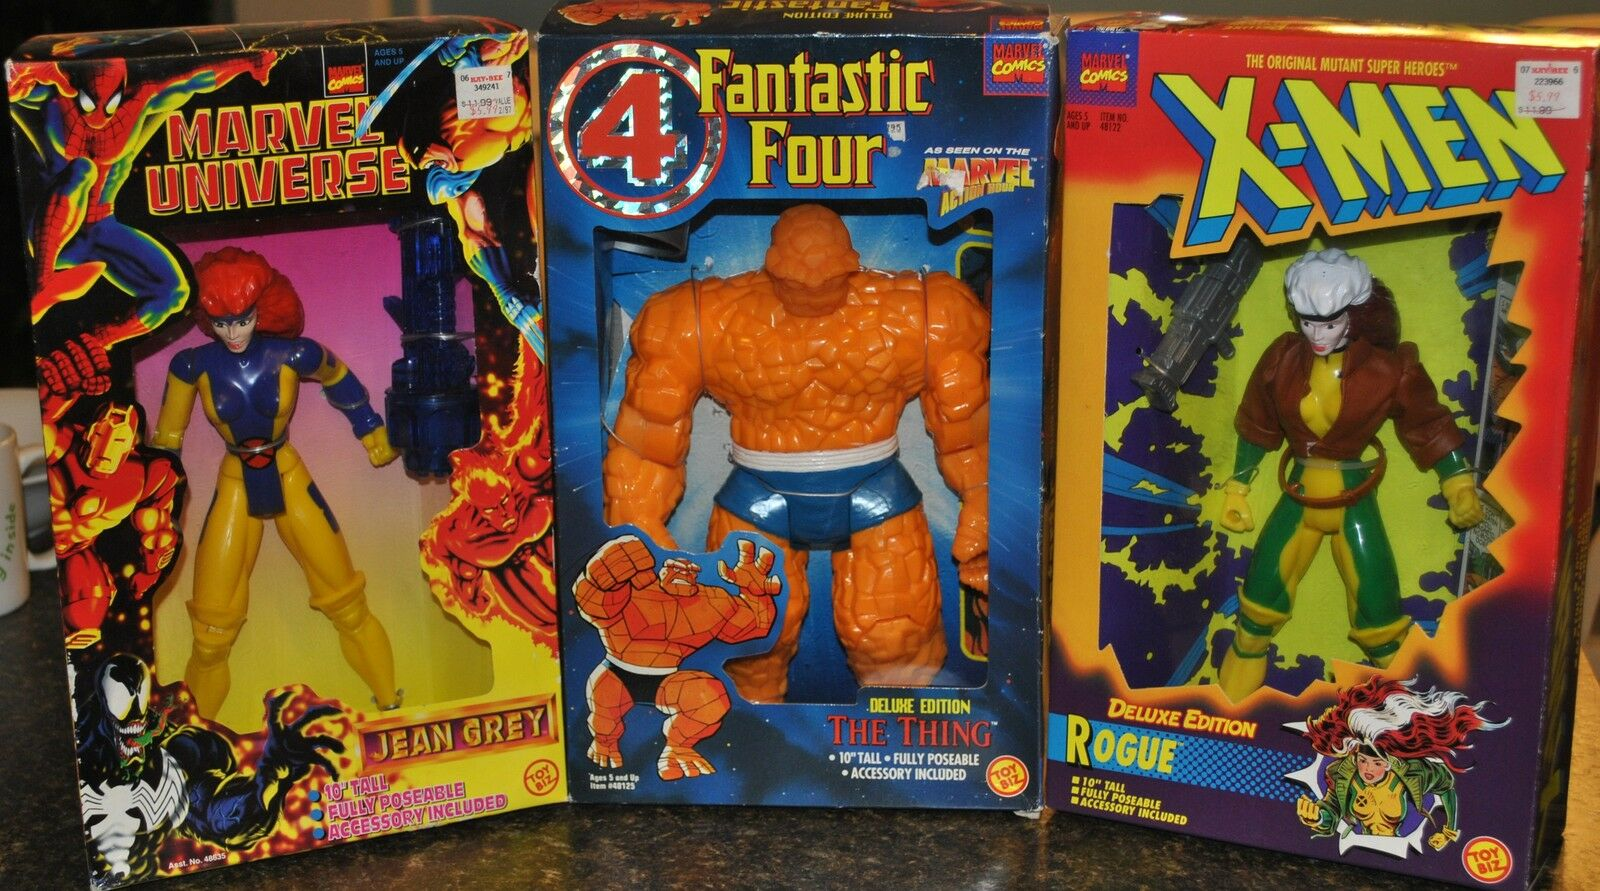 X-MEN WOMAN ROGUE & JEAN GREY WITH THE FANTASTIC FOUR  THE THING  DELUXE EDITION